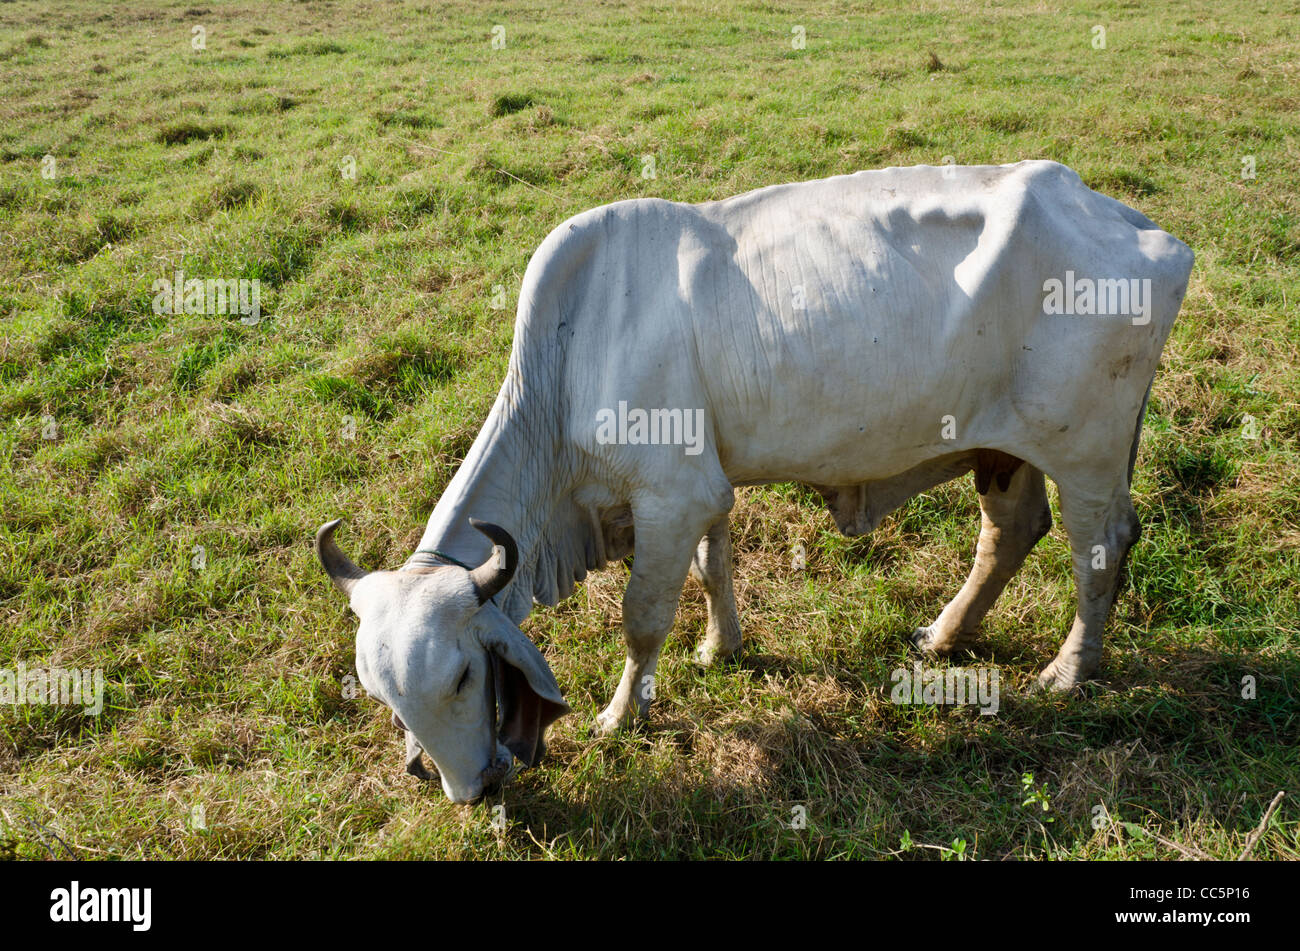 A large white Brahman cow with curved horns and large floppy ears grazing in a field in northern Thailand - Stock Image